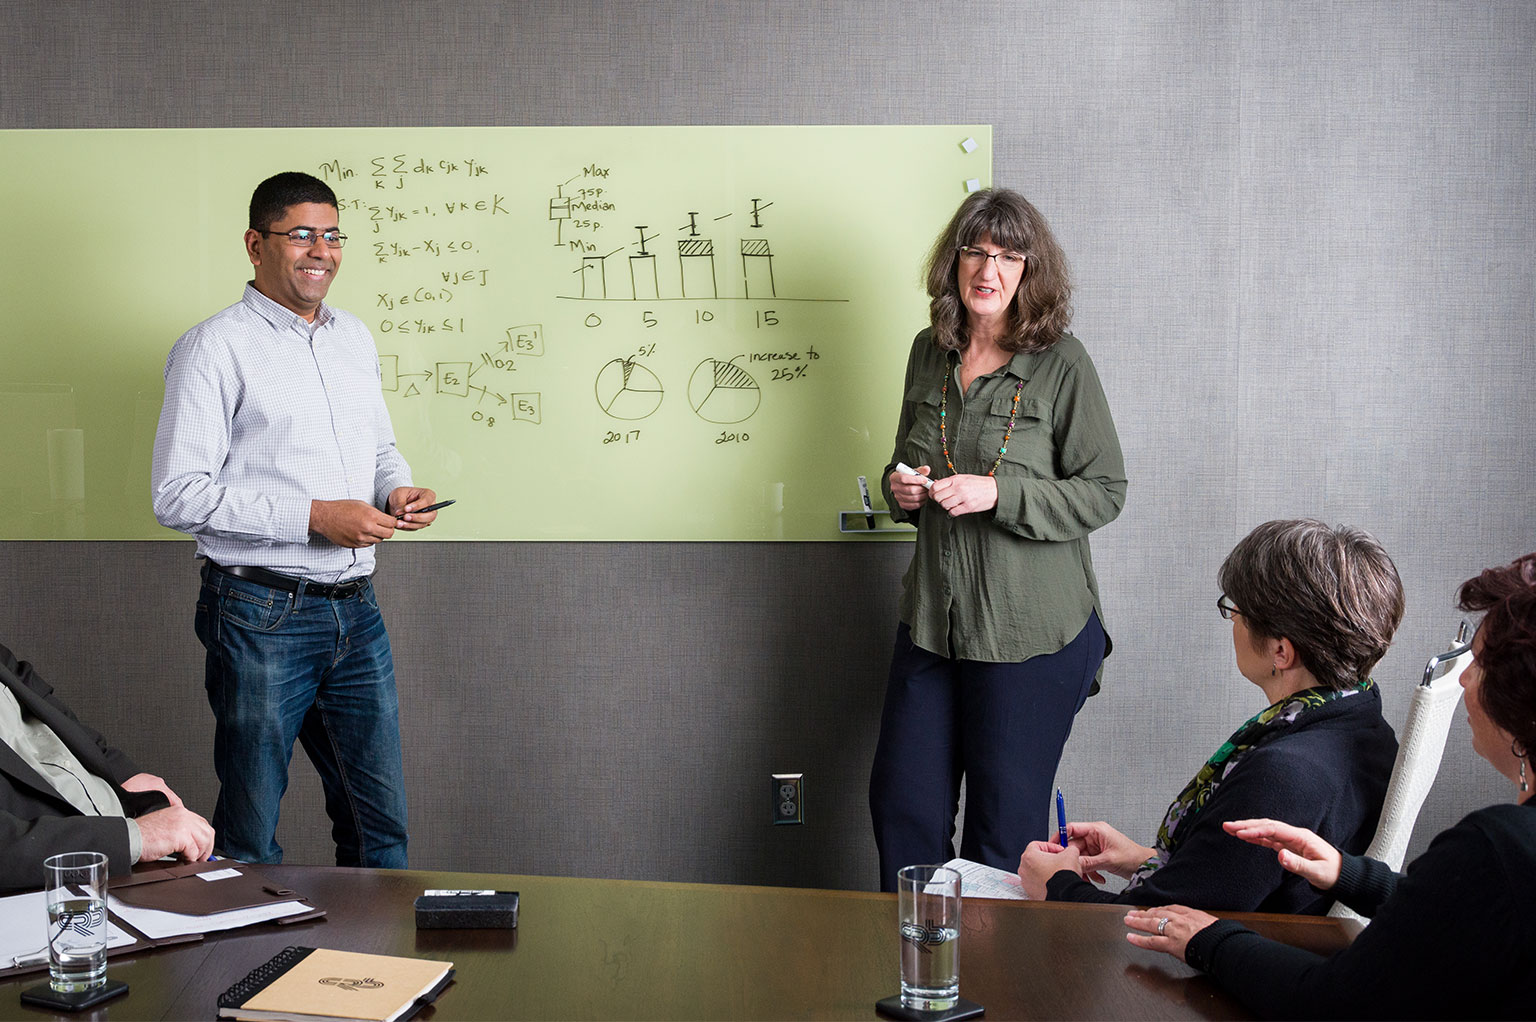 Two people at a whiteboard listening to others